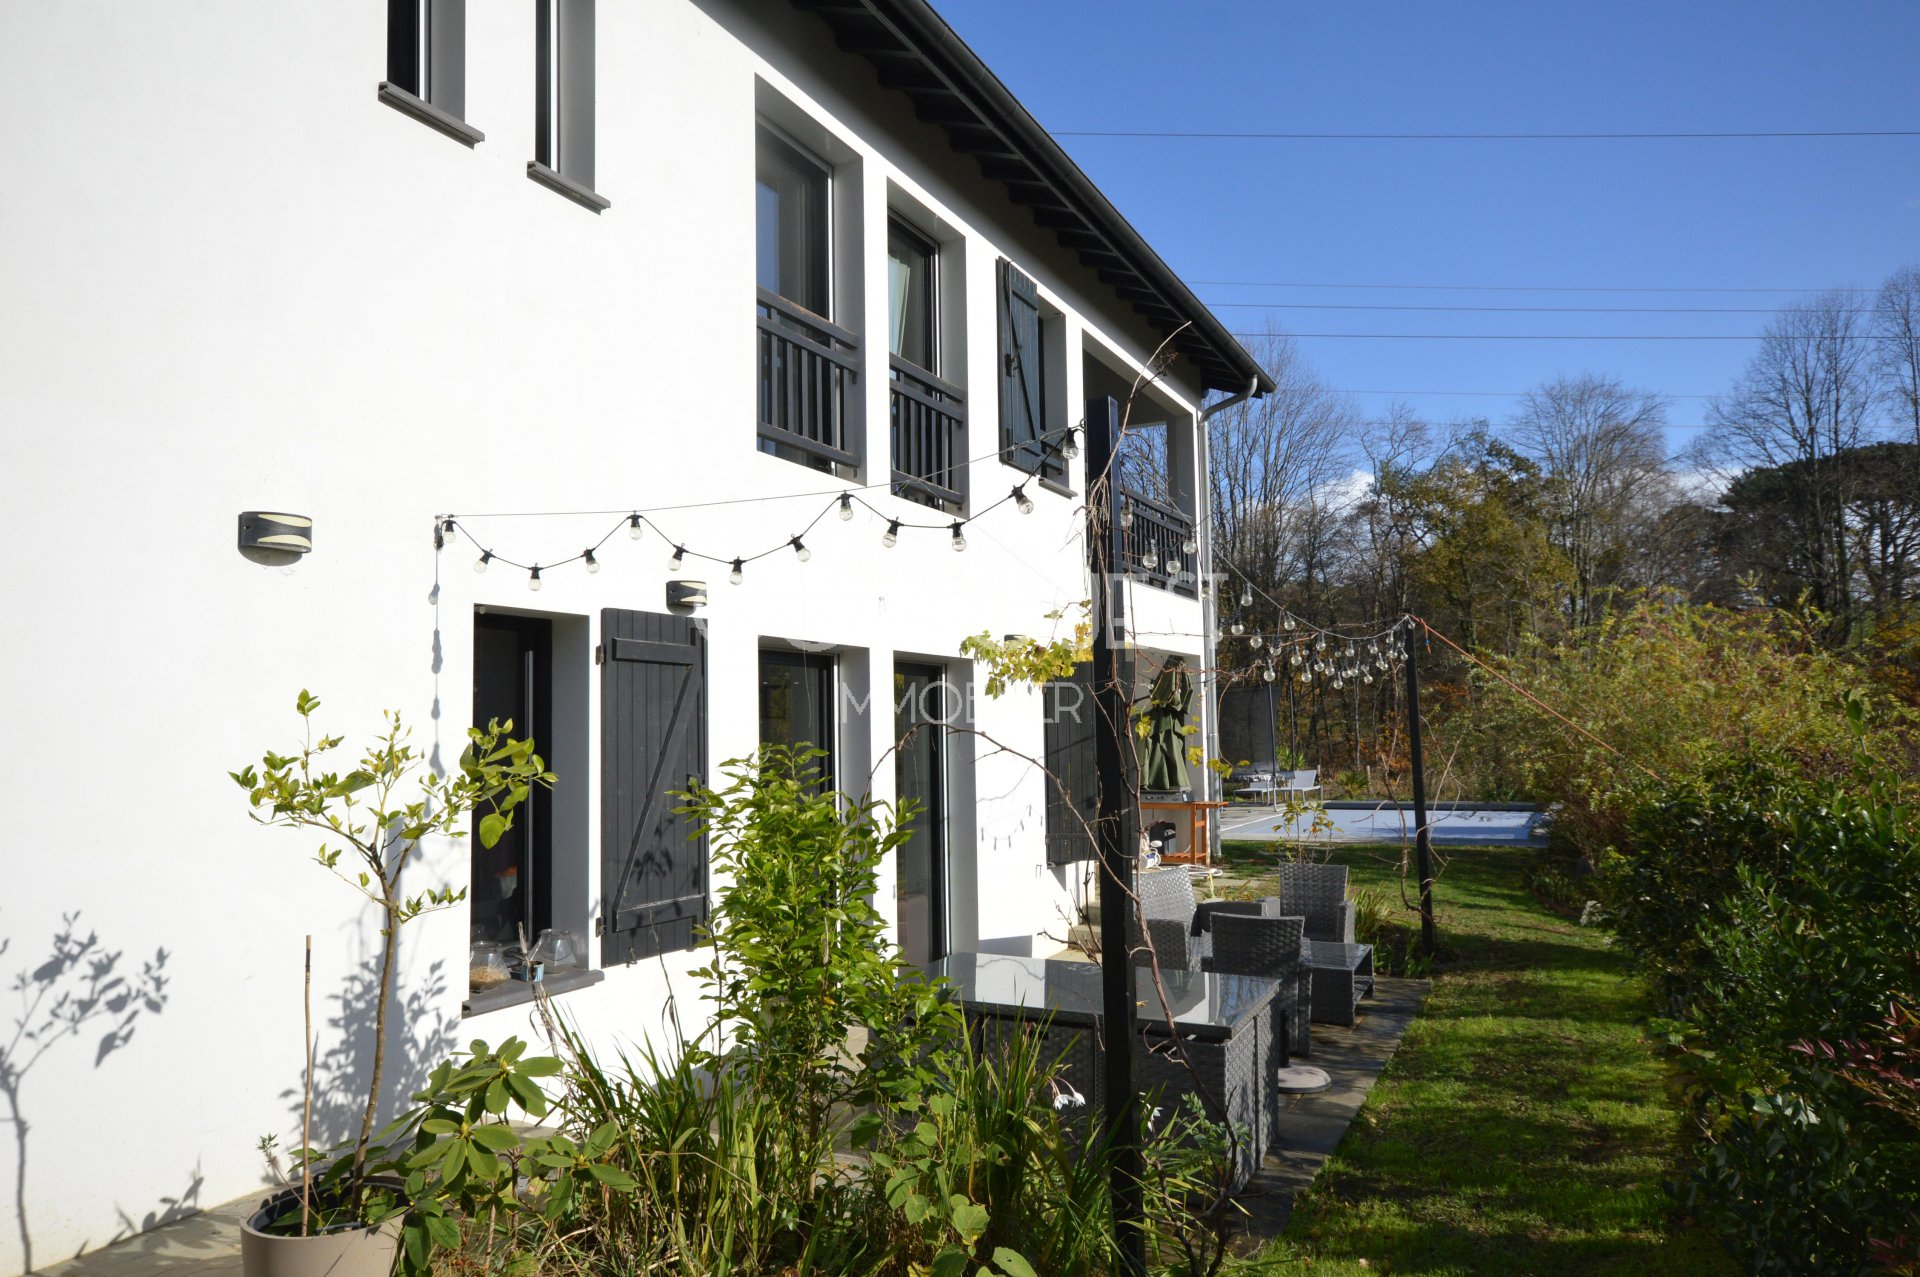 SAINT JEAN DE LUZ – A 3-BED PROPERTY WITH A SWIMMING POOL